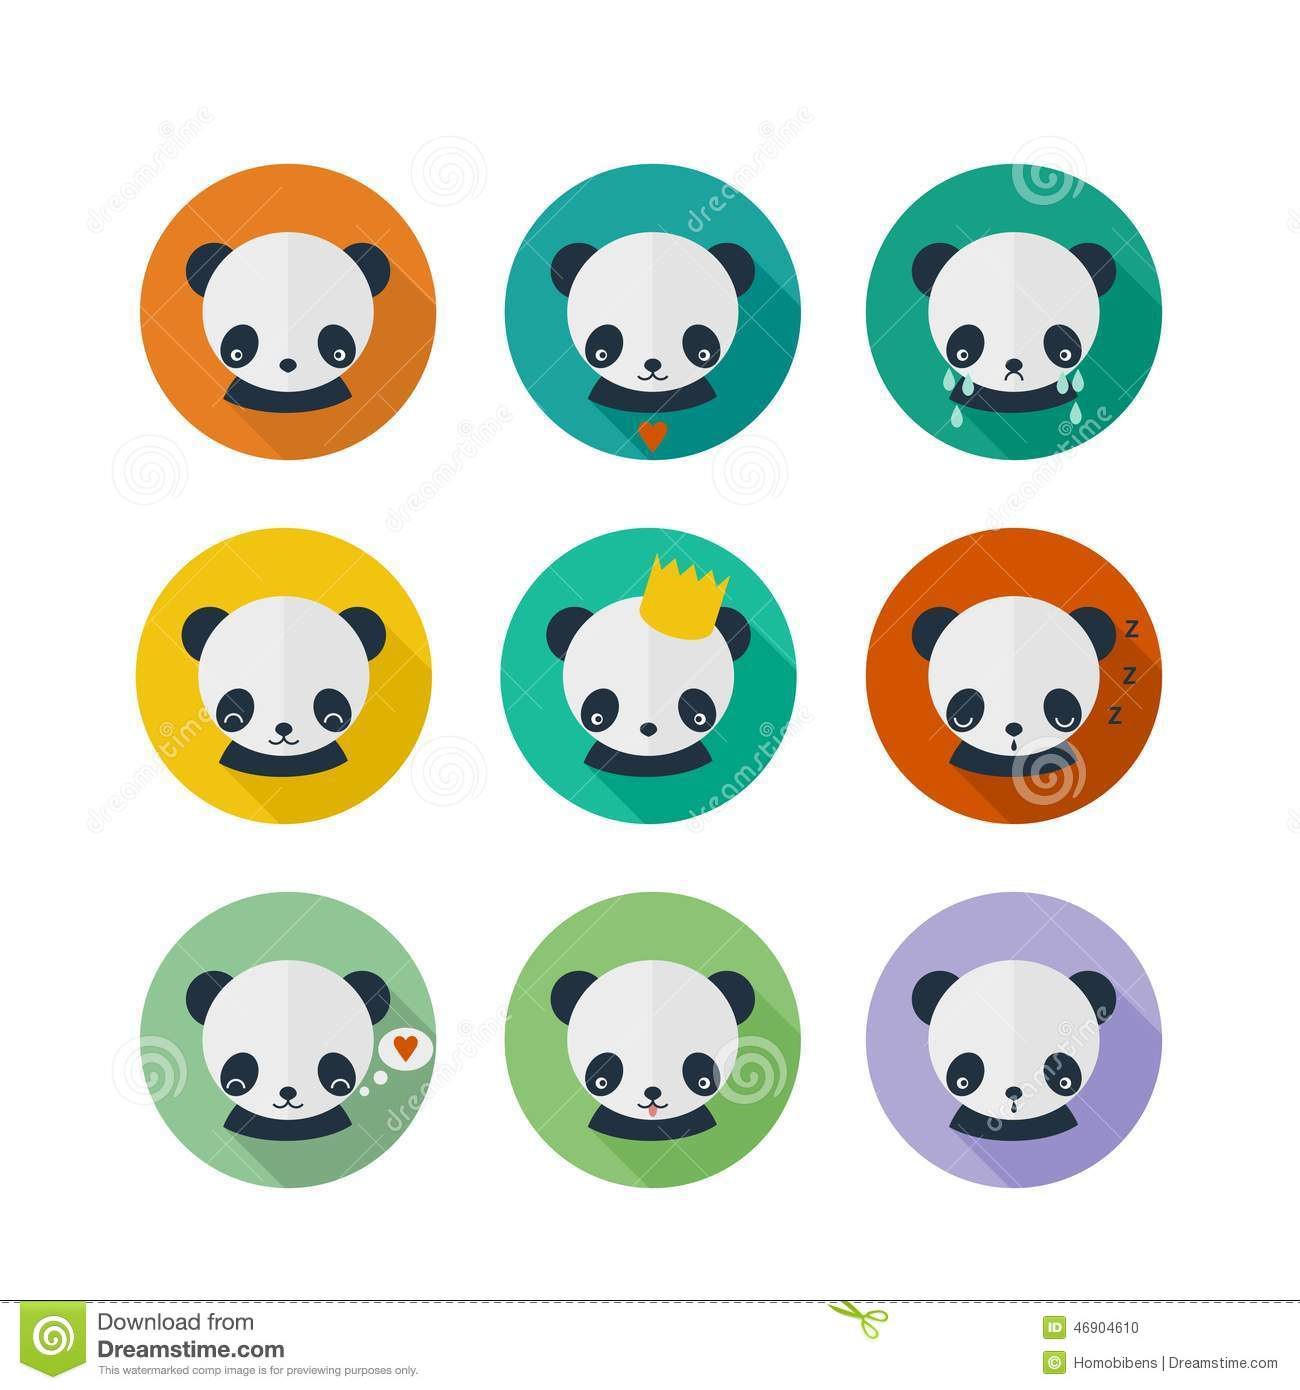 ... in flat design. Cute panda, animal avatars with different emotions